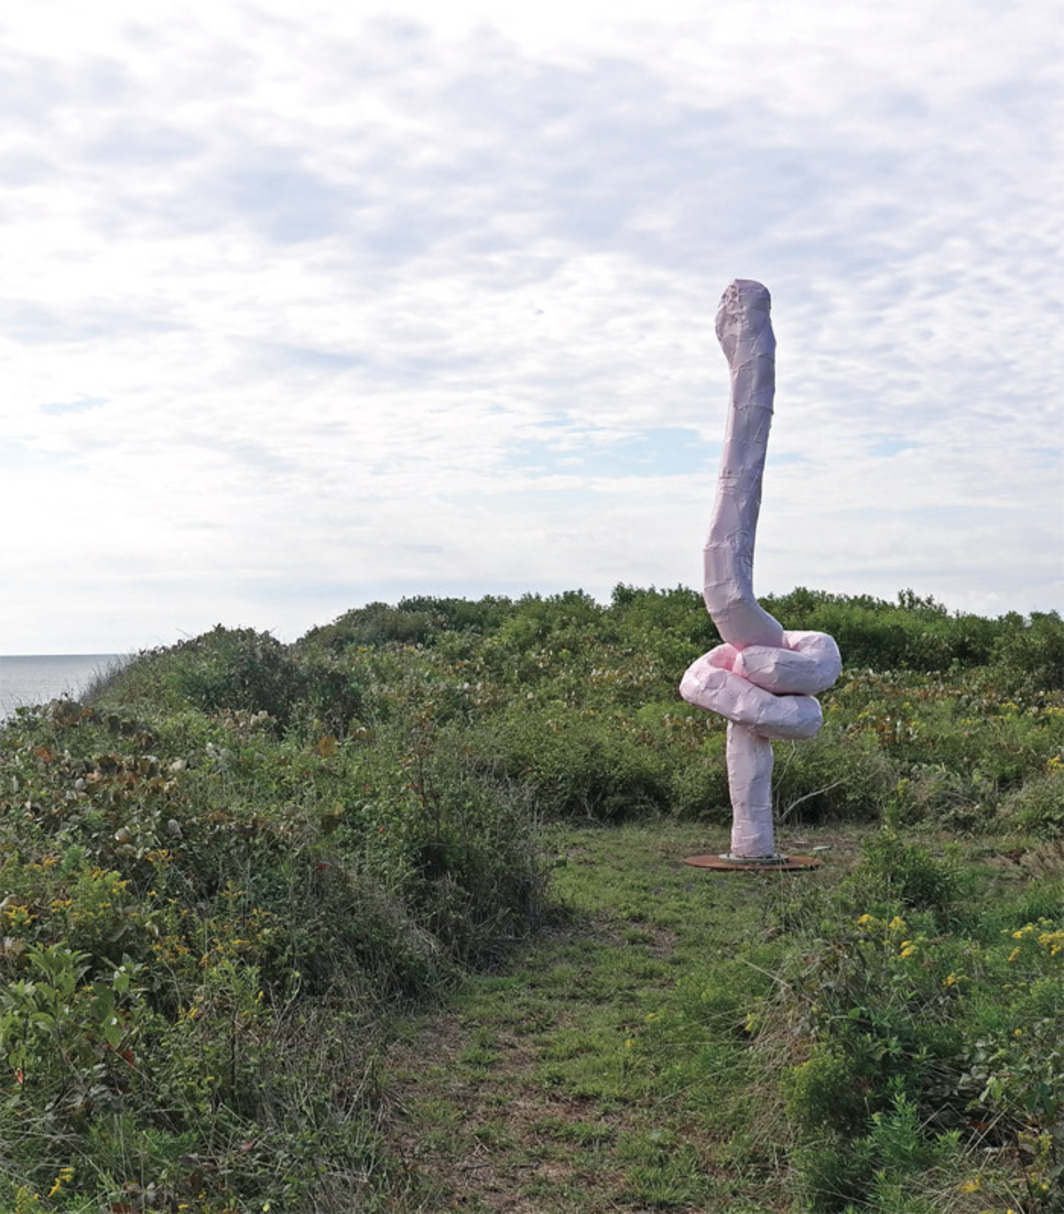 Franz West, Eidolon, 2009, painted aluminum. Installation view, Montauk, New York, 2012. Photo: Adam Lindemann.